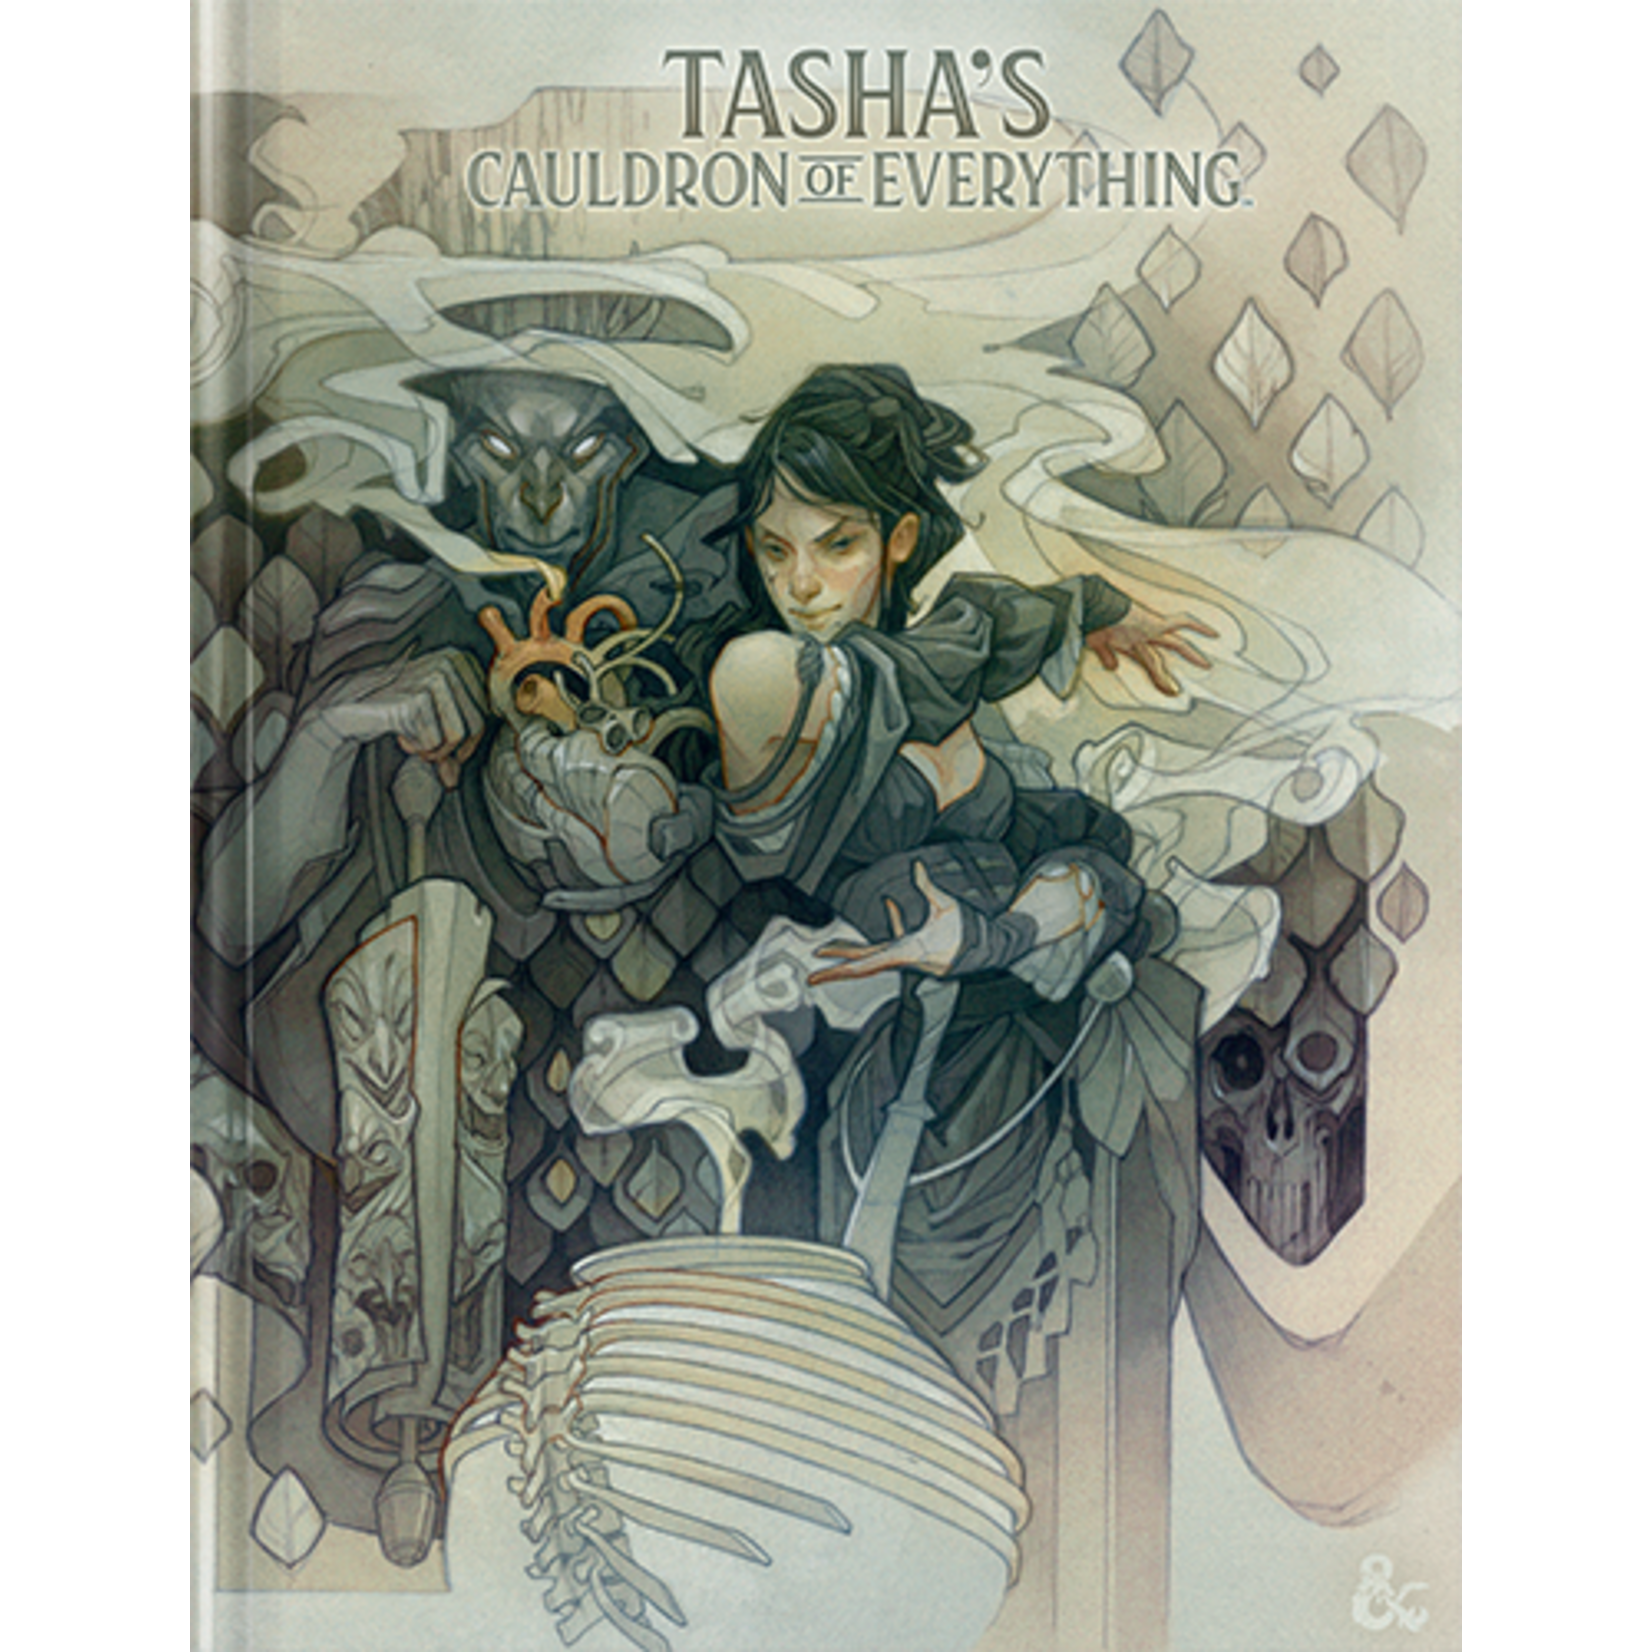 Wizards of the Coast Dungeons and Dragons 5th Edition: Tasha's Cauldron of Everything Hardcover (Alternate Art Cover)